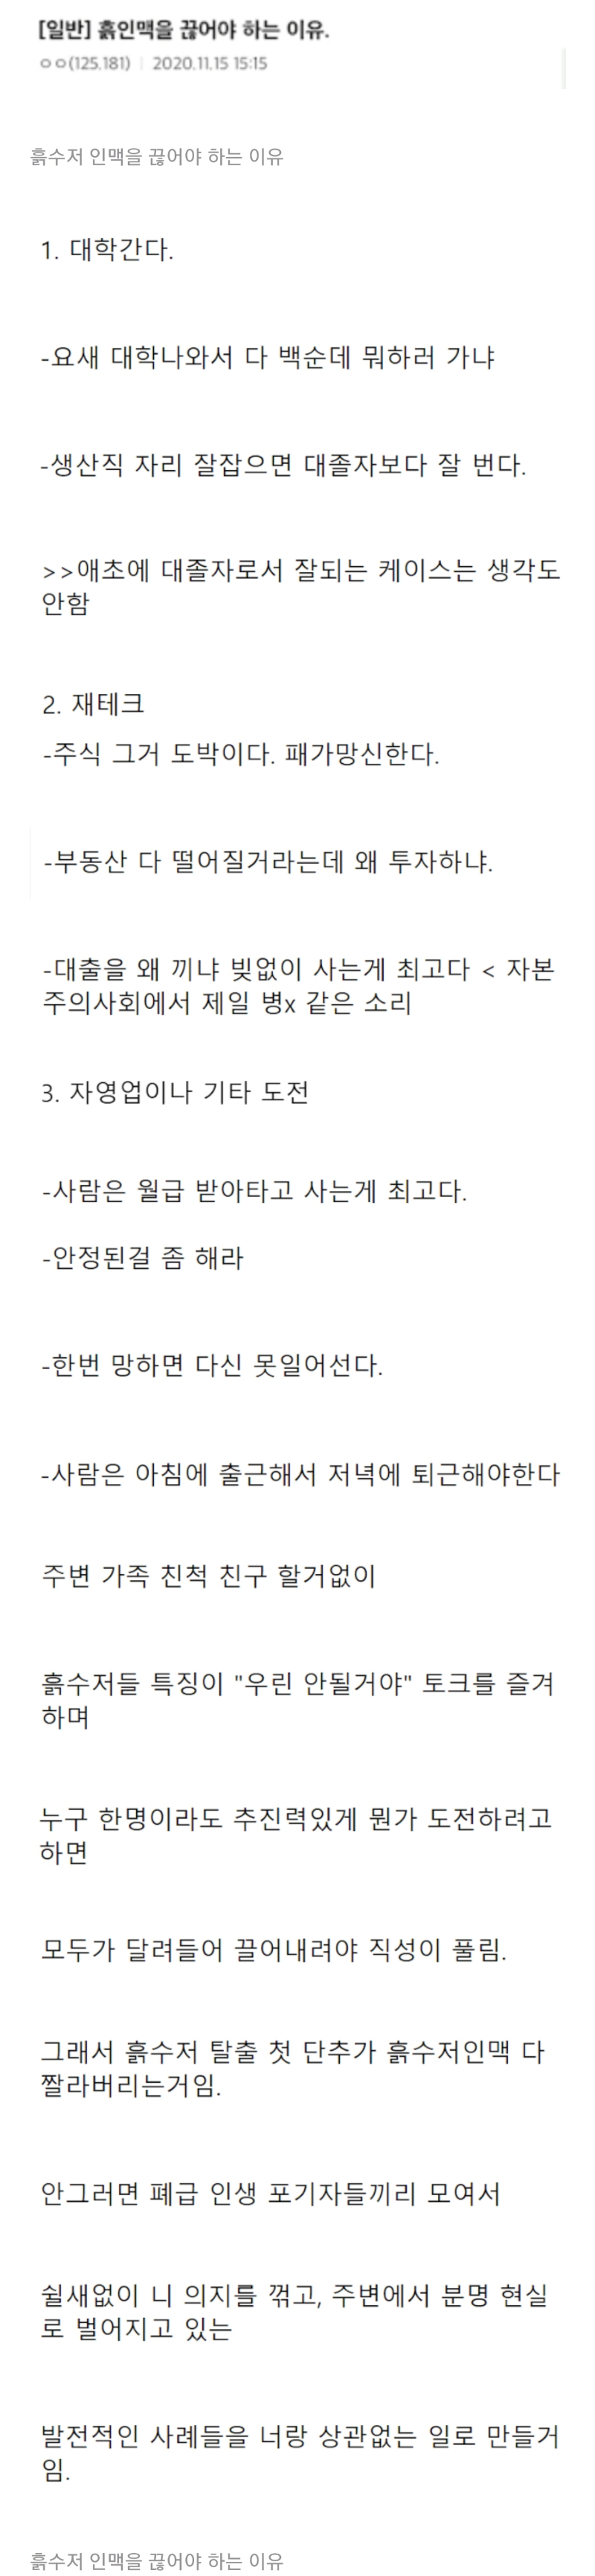 Screenshot_20201122-142909_NAVER.jpg